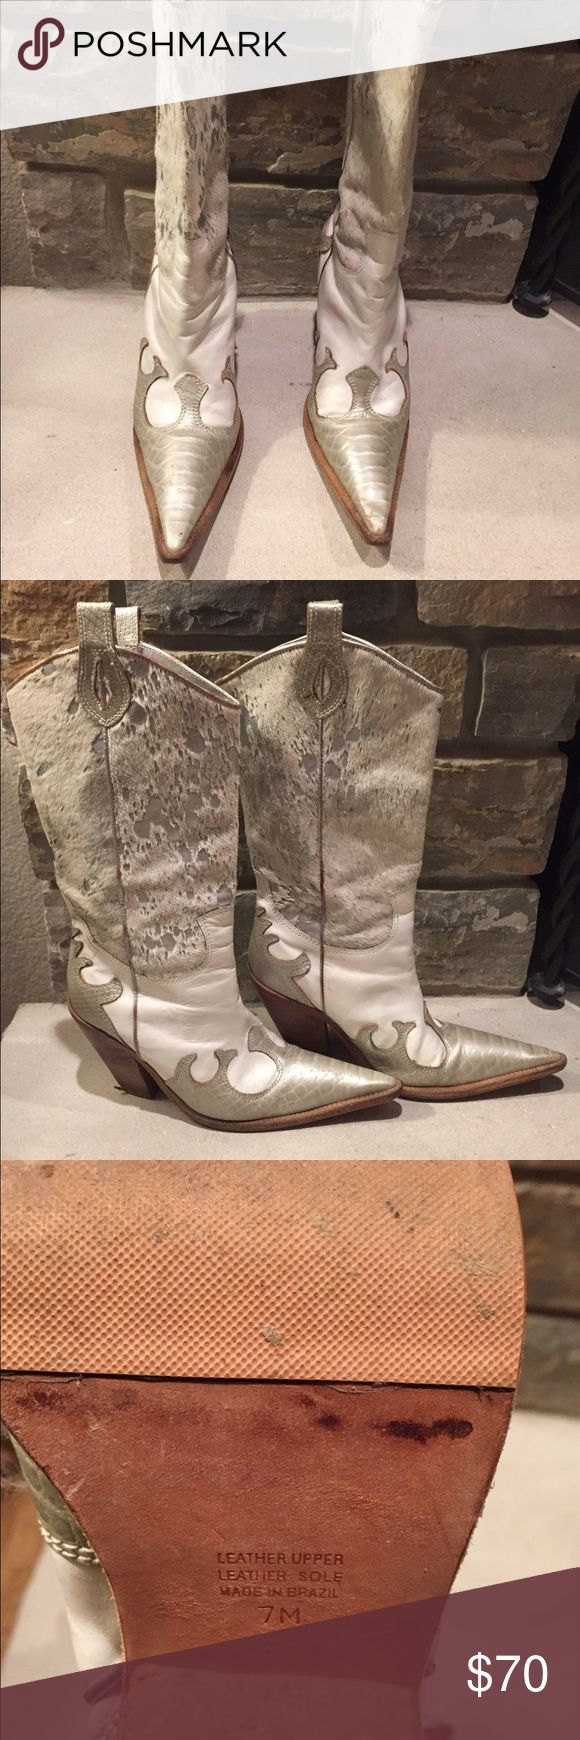 Para Raio Cowgirl Boots Stylish, white and silver cowgirl boots. Genuine leather and made in Brazil. Para Raio Shoes Heeled Boots